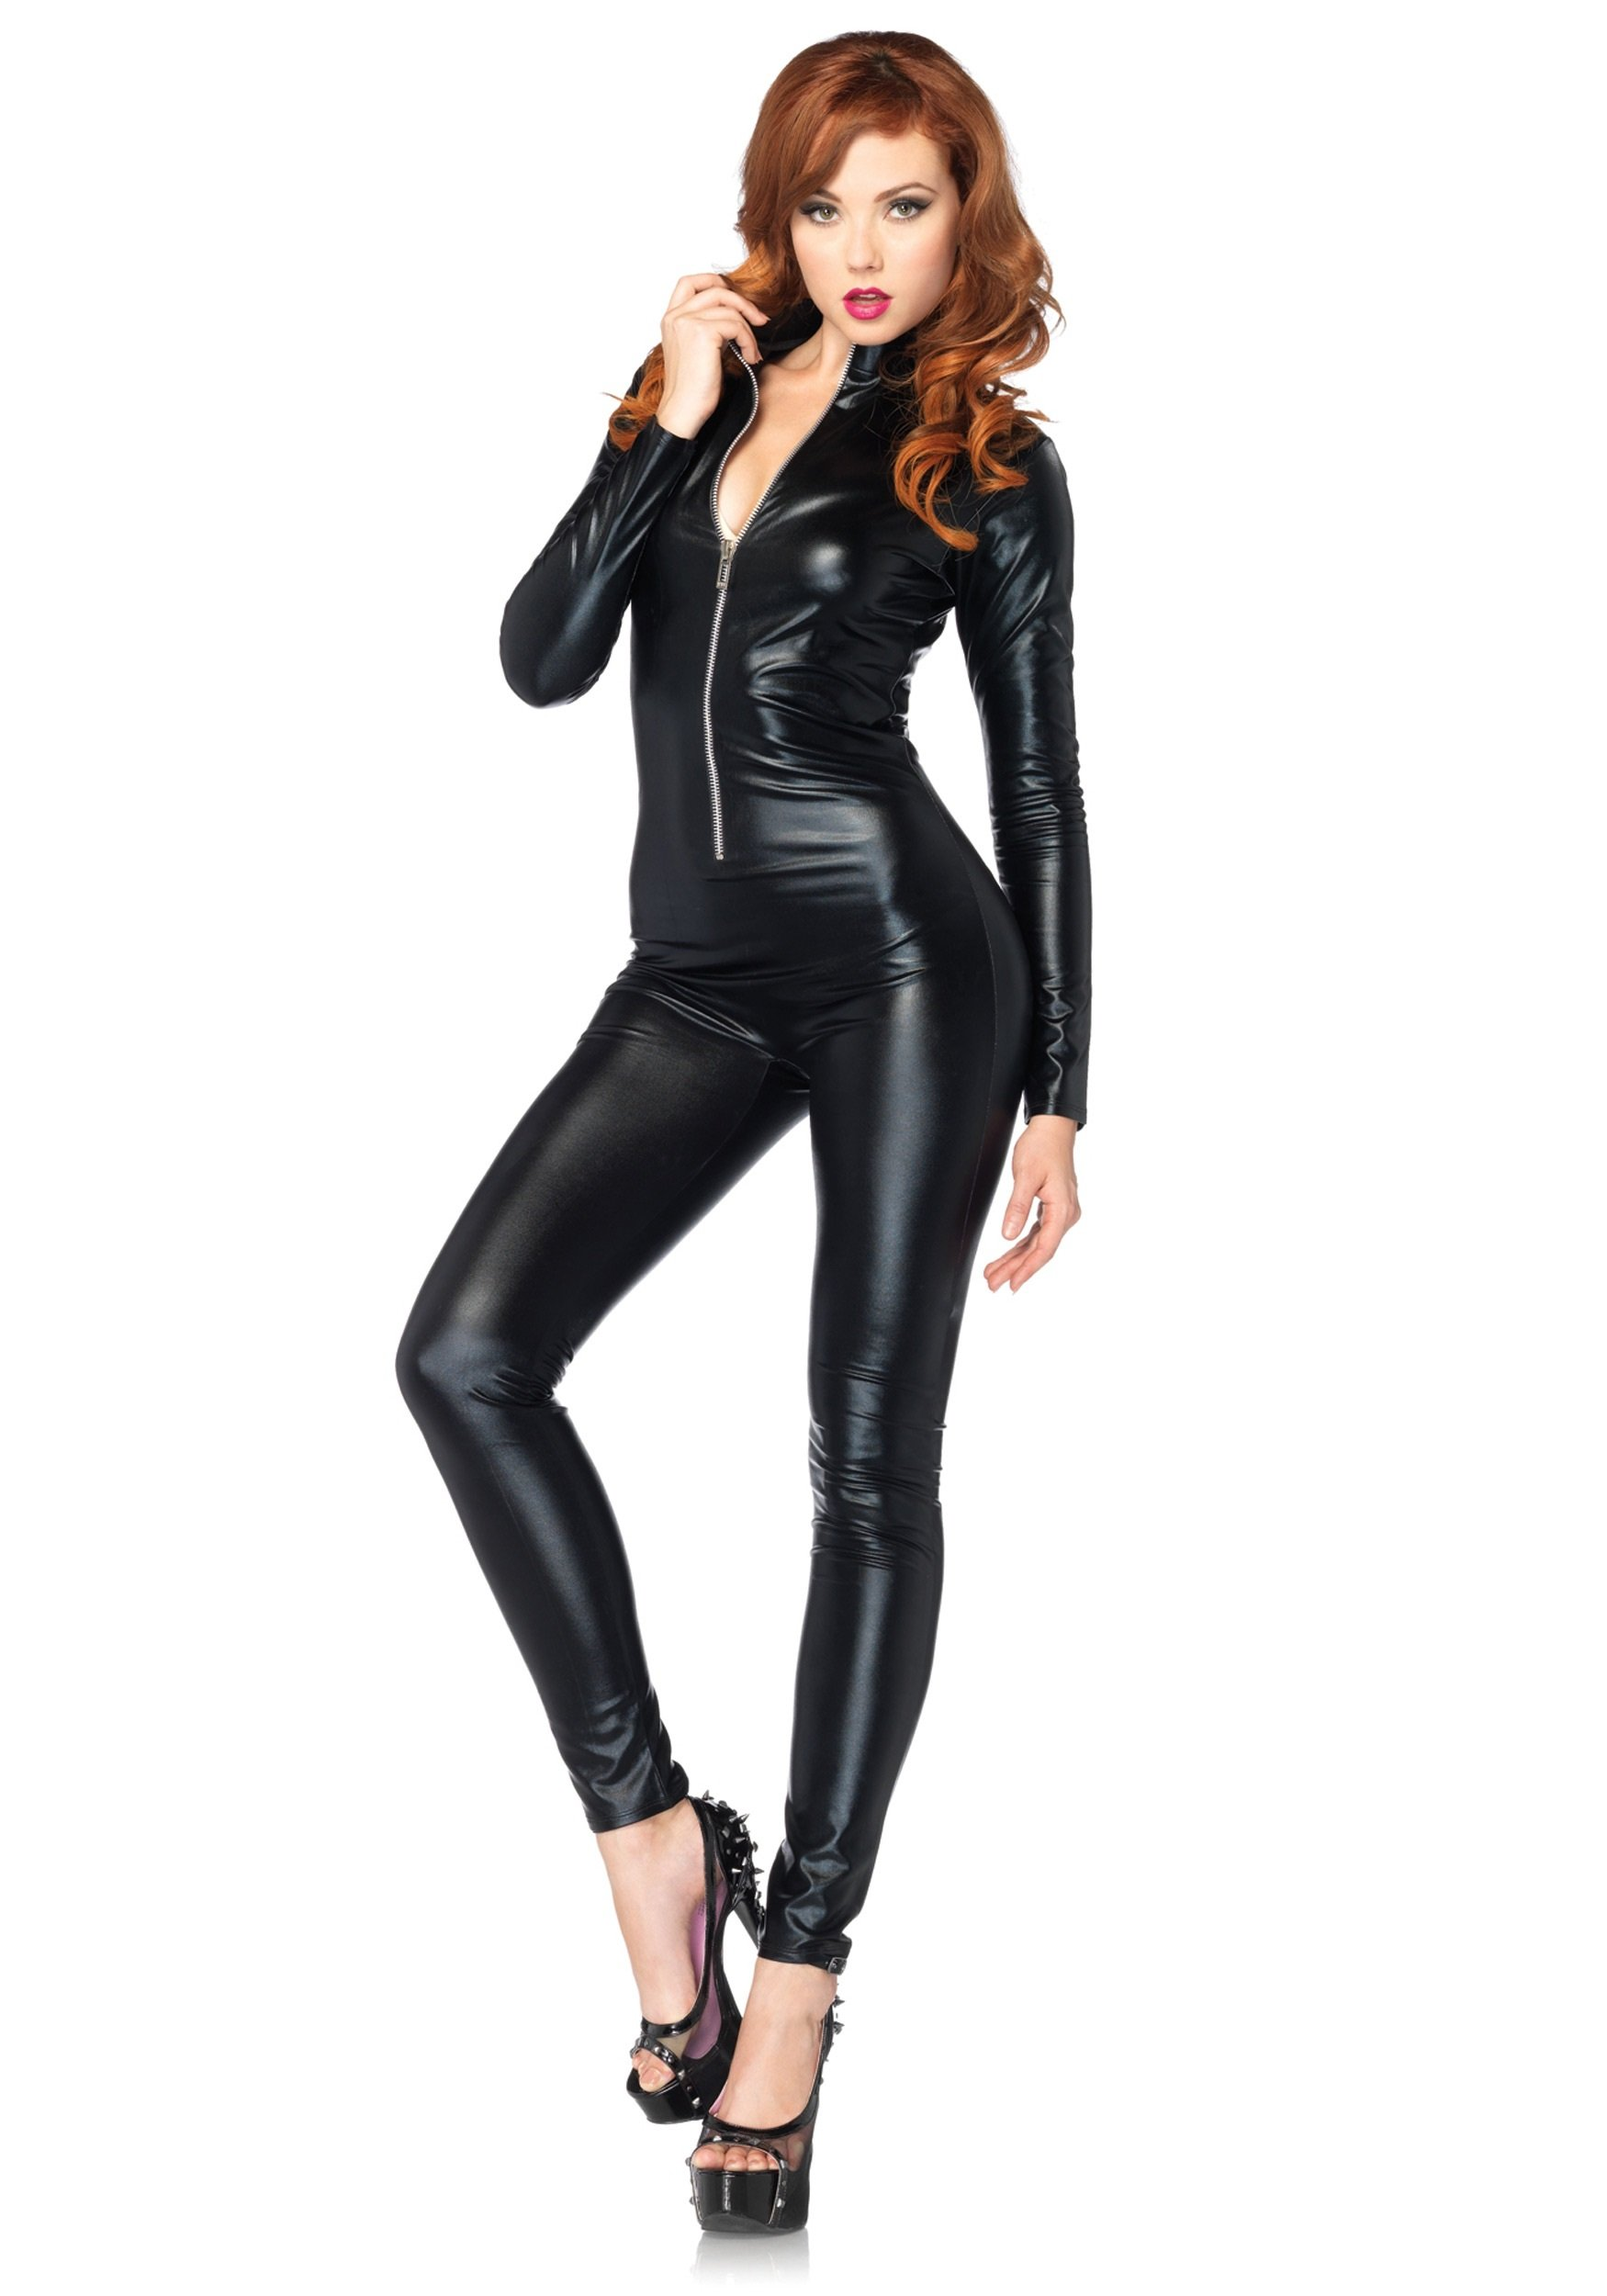 - 71xb0pup4AL - Leg Avenue Women's Wet Look Zipper Front Cat Suit, Black